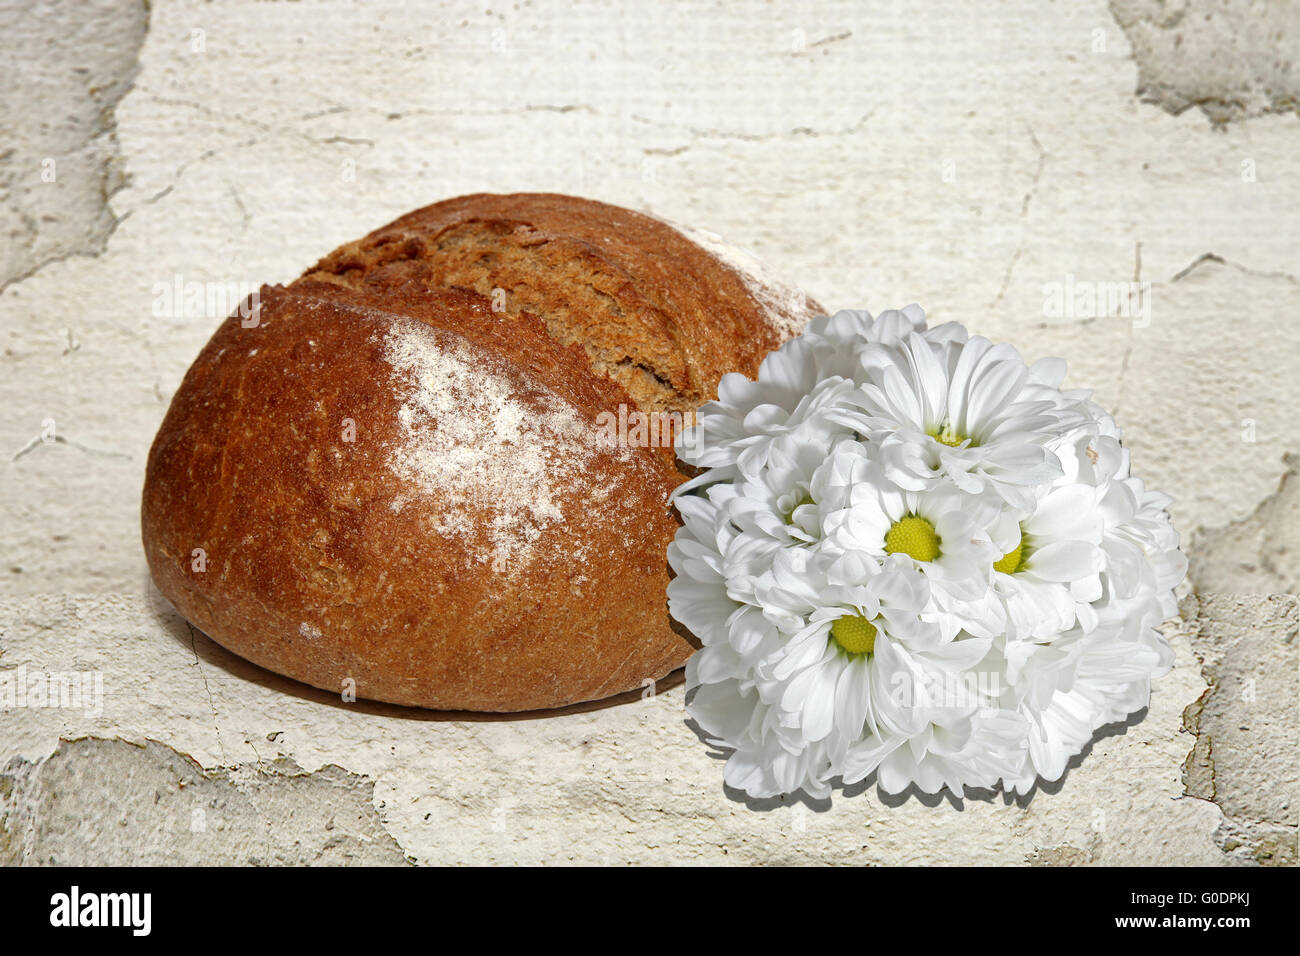 Bread with flowers - Stock Image